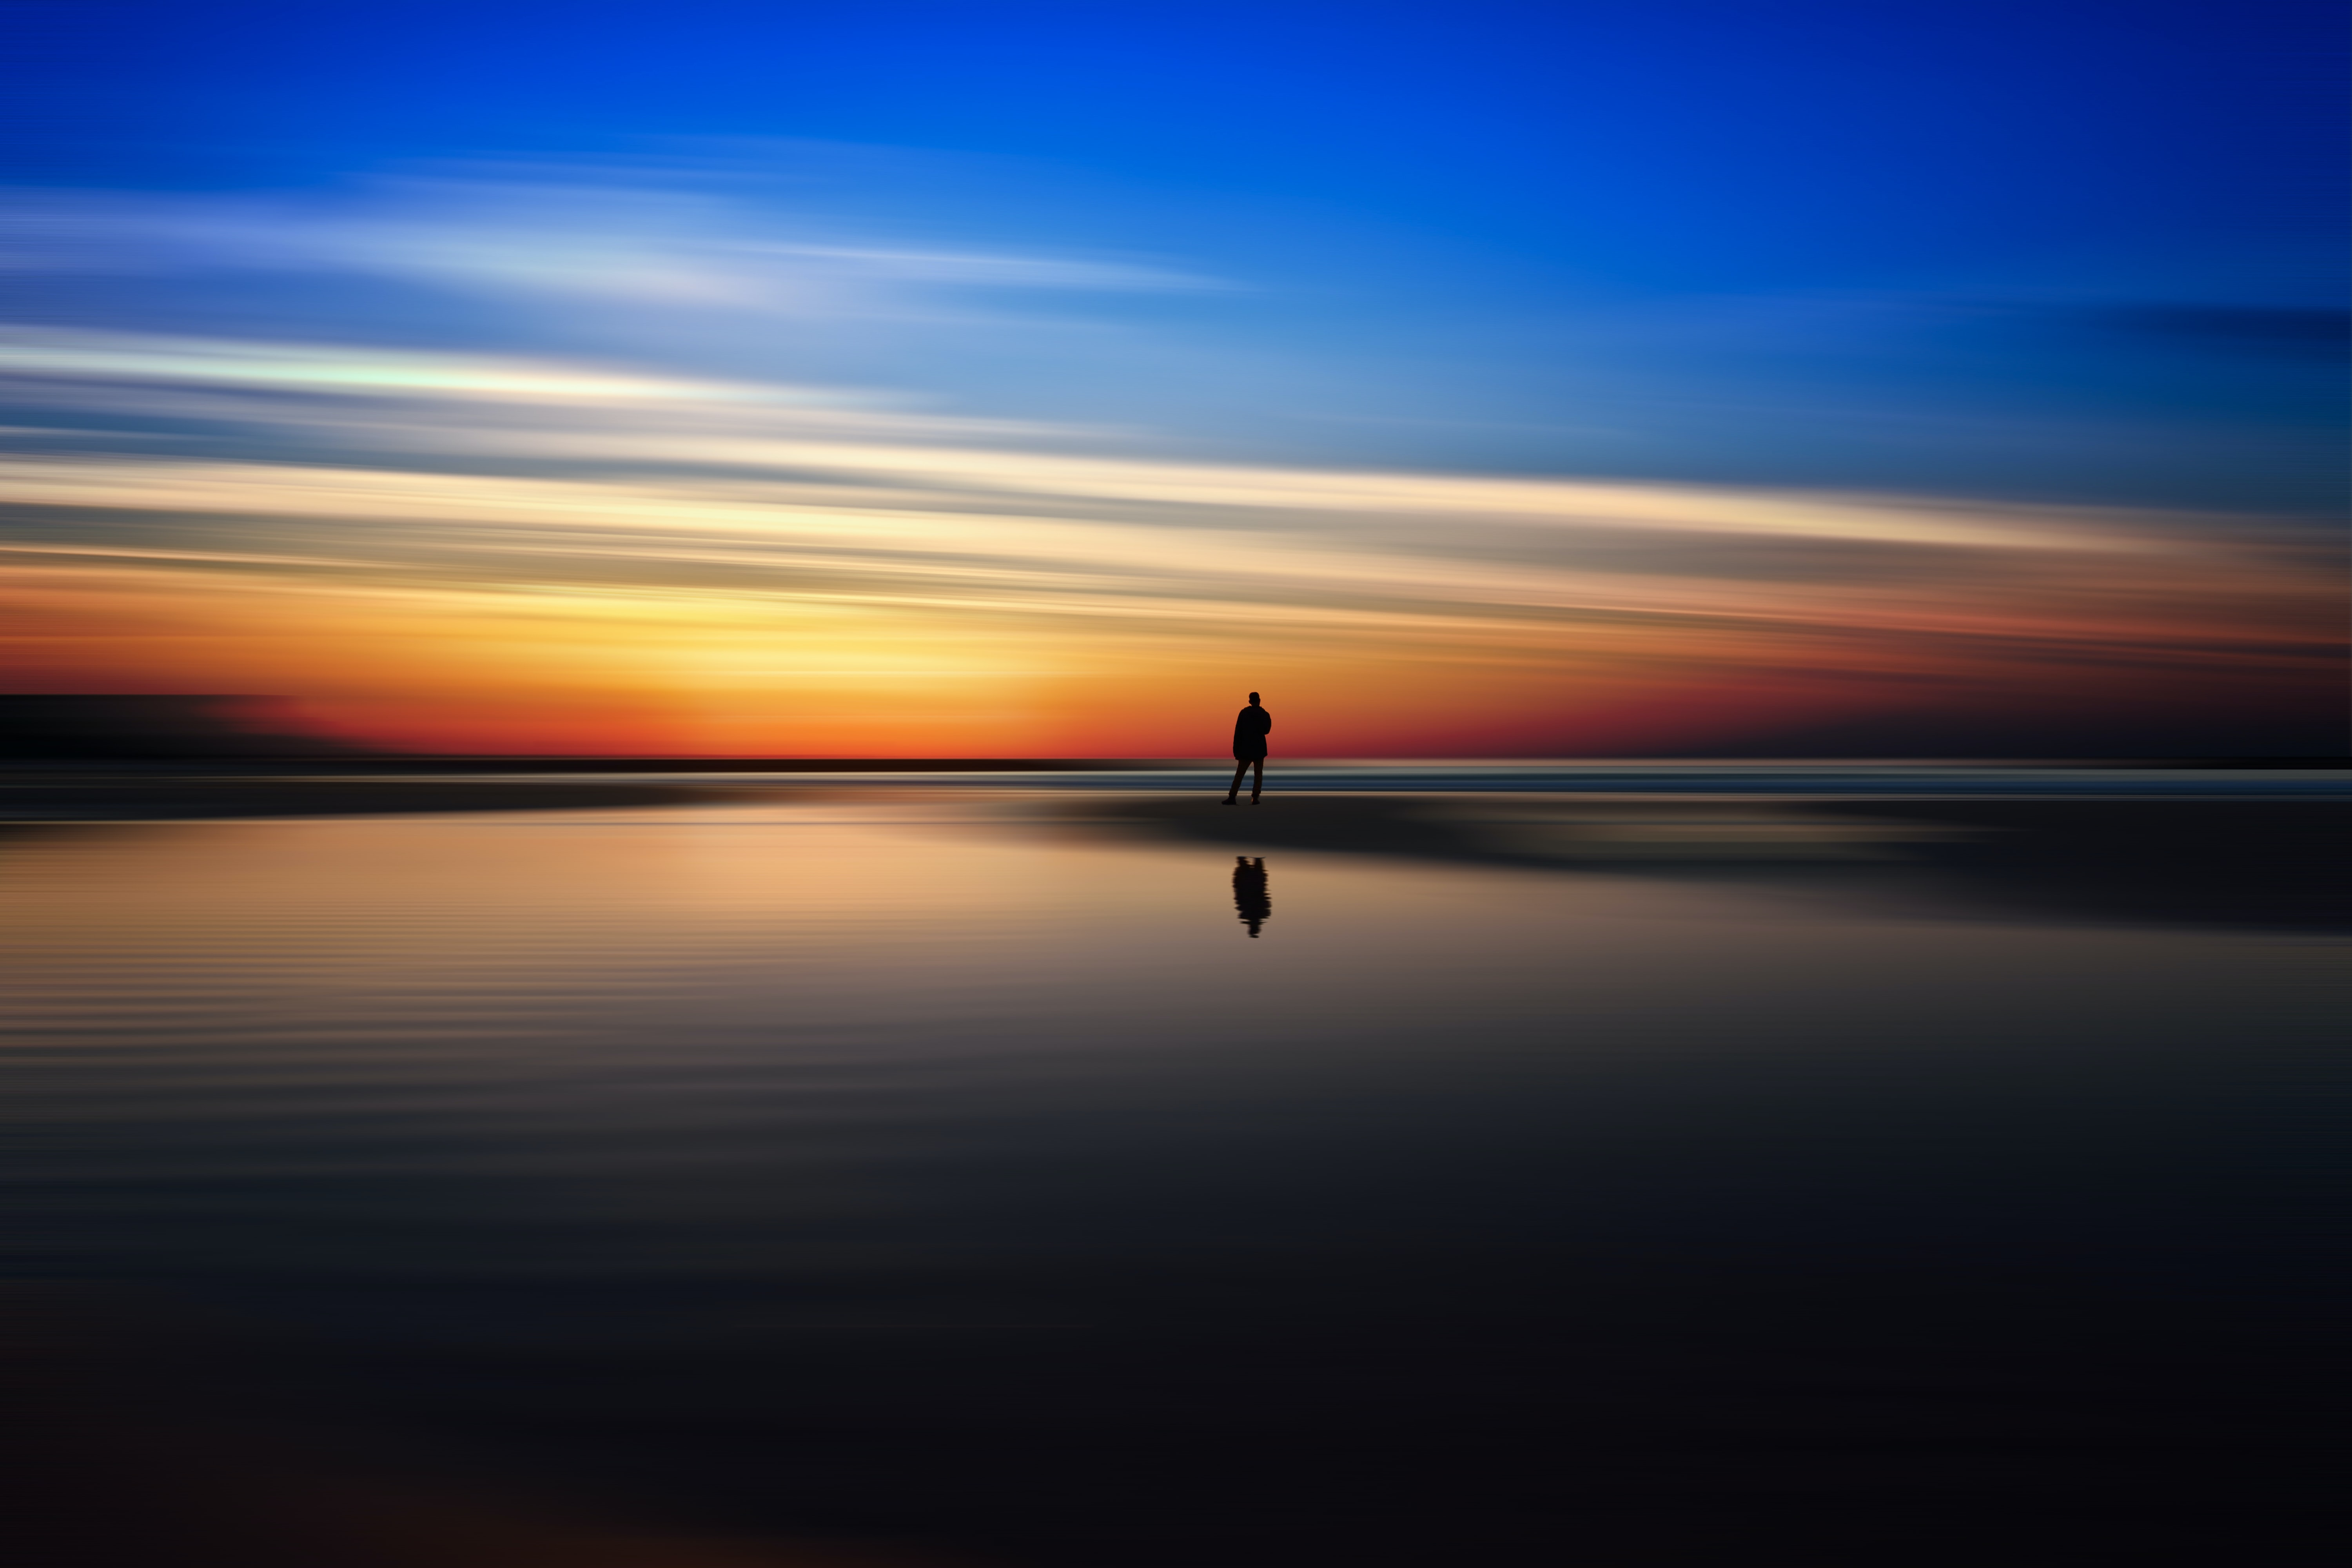 Colorful sunset reflecting off the beach in Tel Aviv-Yafo with person standing in horizon